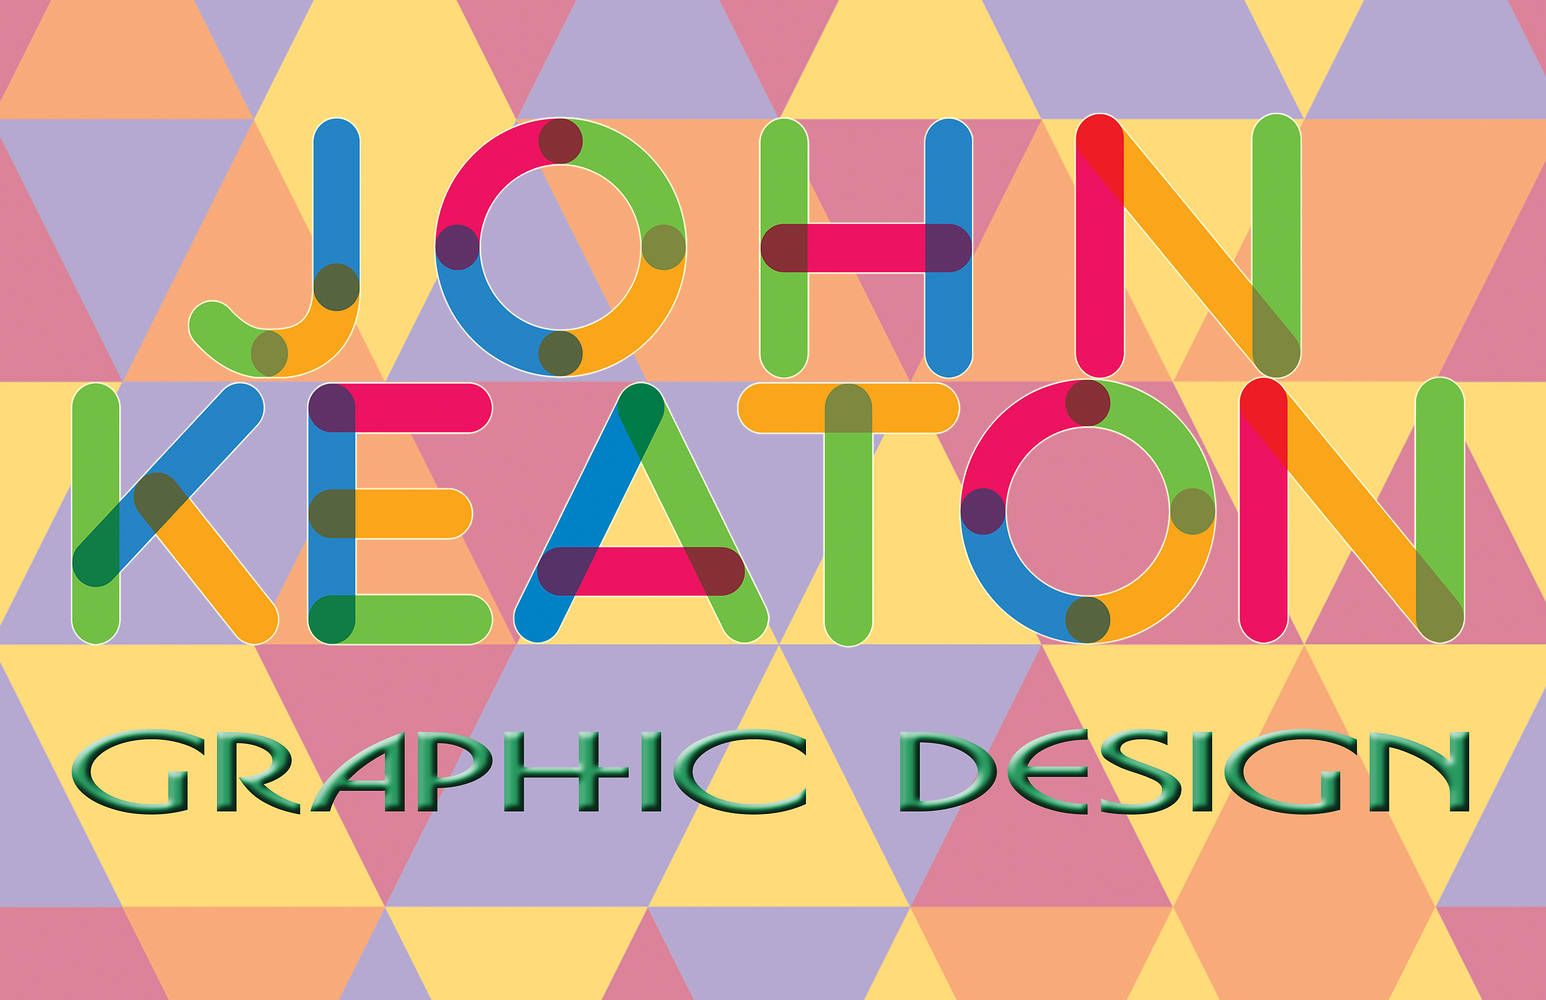 John Keaton Graphic Design Logo by John Keaton